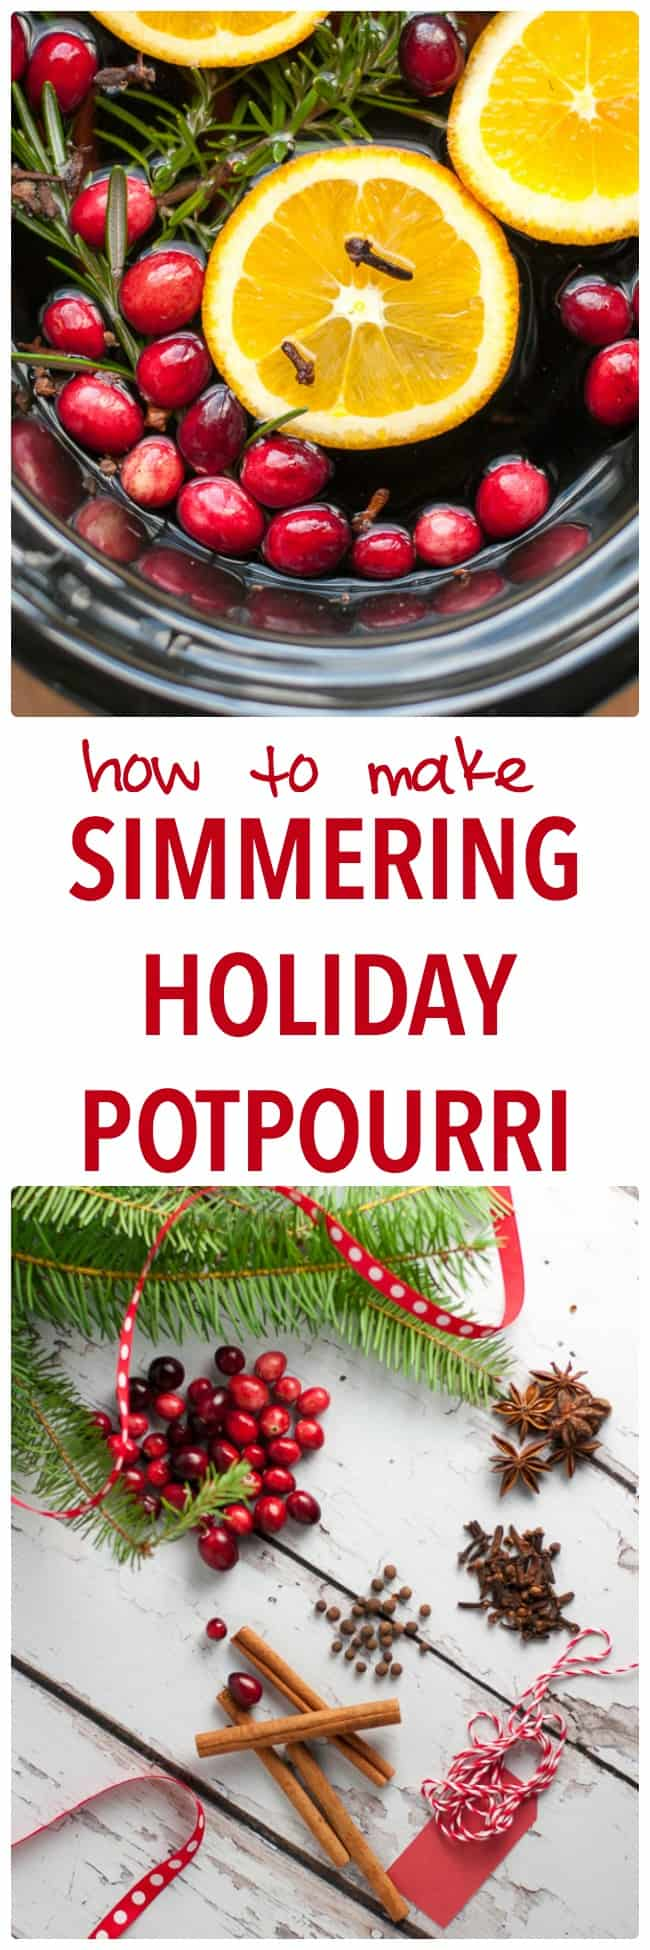 How to Make Simmering Holiday Potpourri on your stove top or in your slow cooker. Makes your home smell like Christmas! Includes printable gift tags, too.